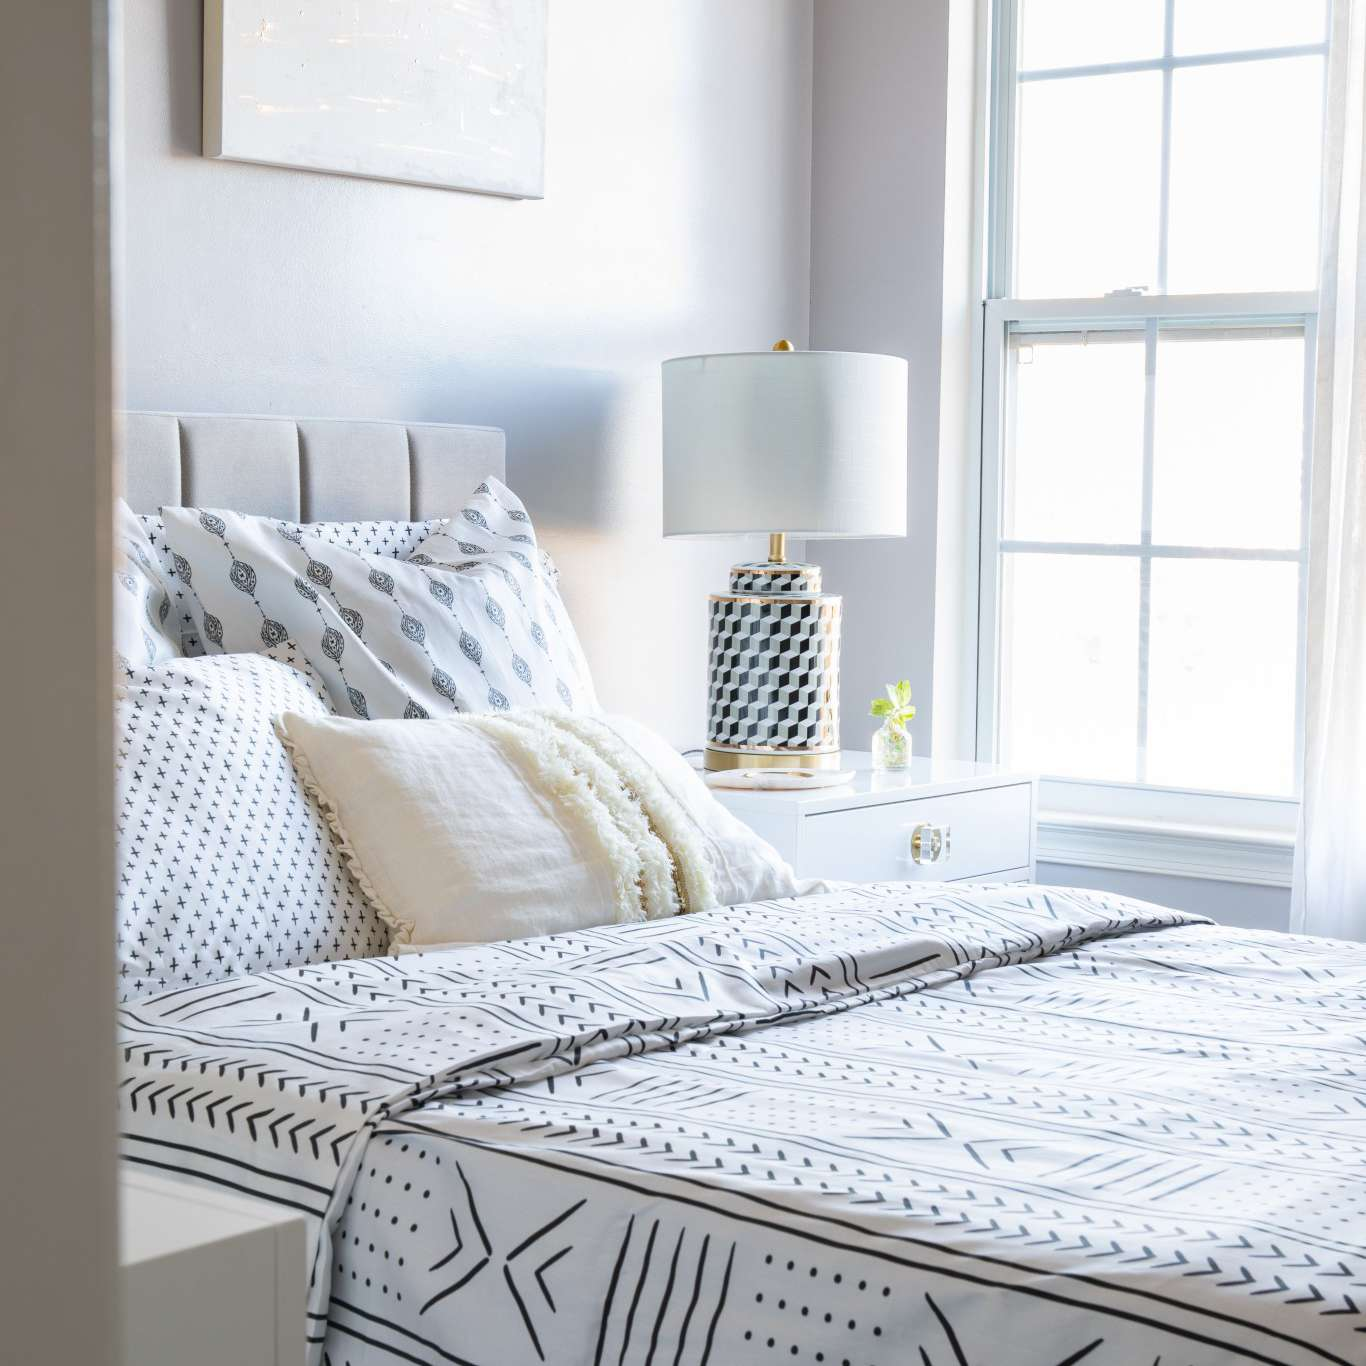 White bedroom with patterned sheets